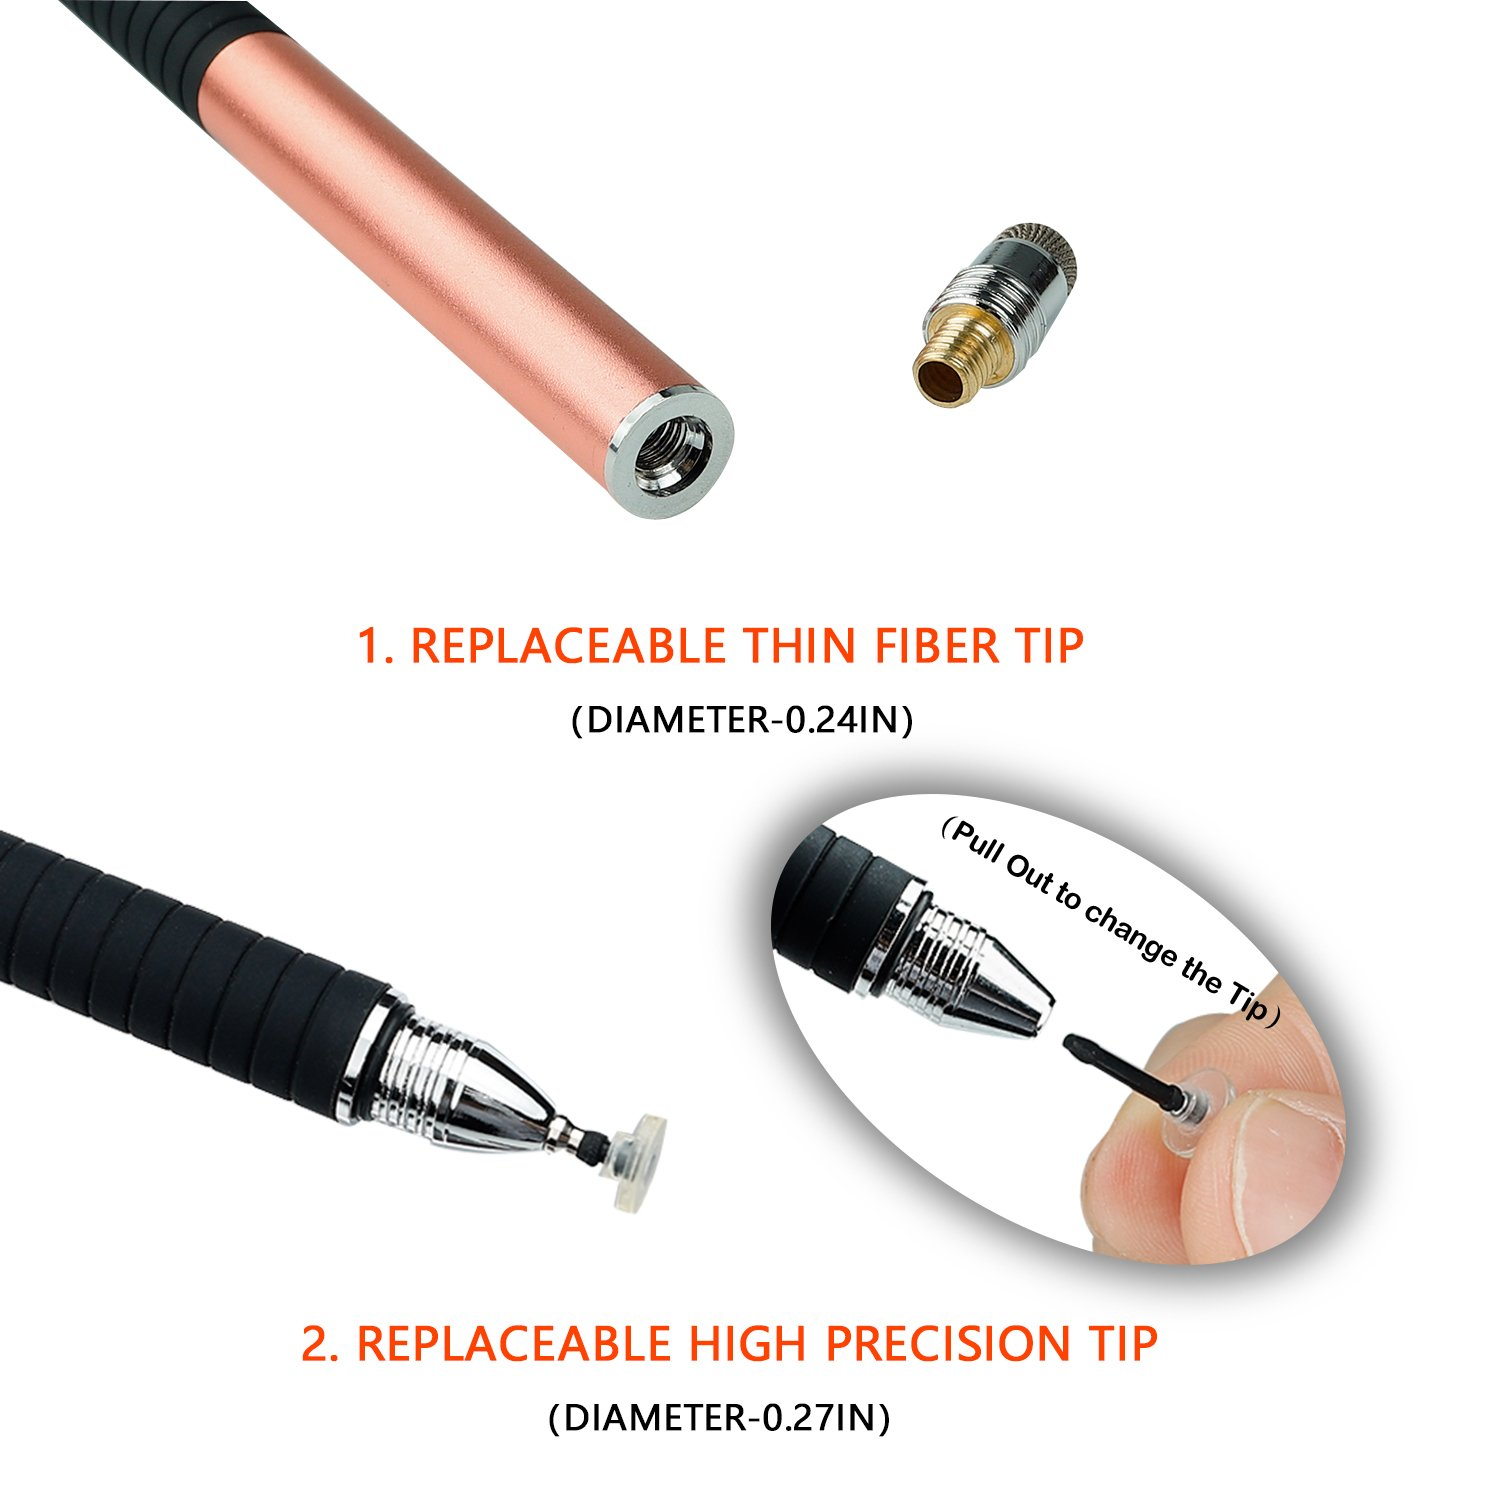 ELYAN Capacitive Stylus Pen,Disc Tip & Fiber Tip 2in1 Series, High Sensitivity & Precision styli Pens, Universal for Tablet and Touch Screens Devices by ELYAN (Image #4)